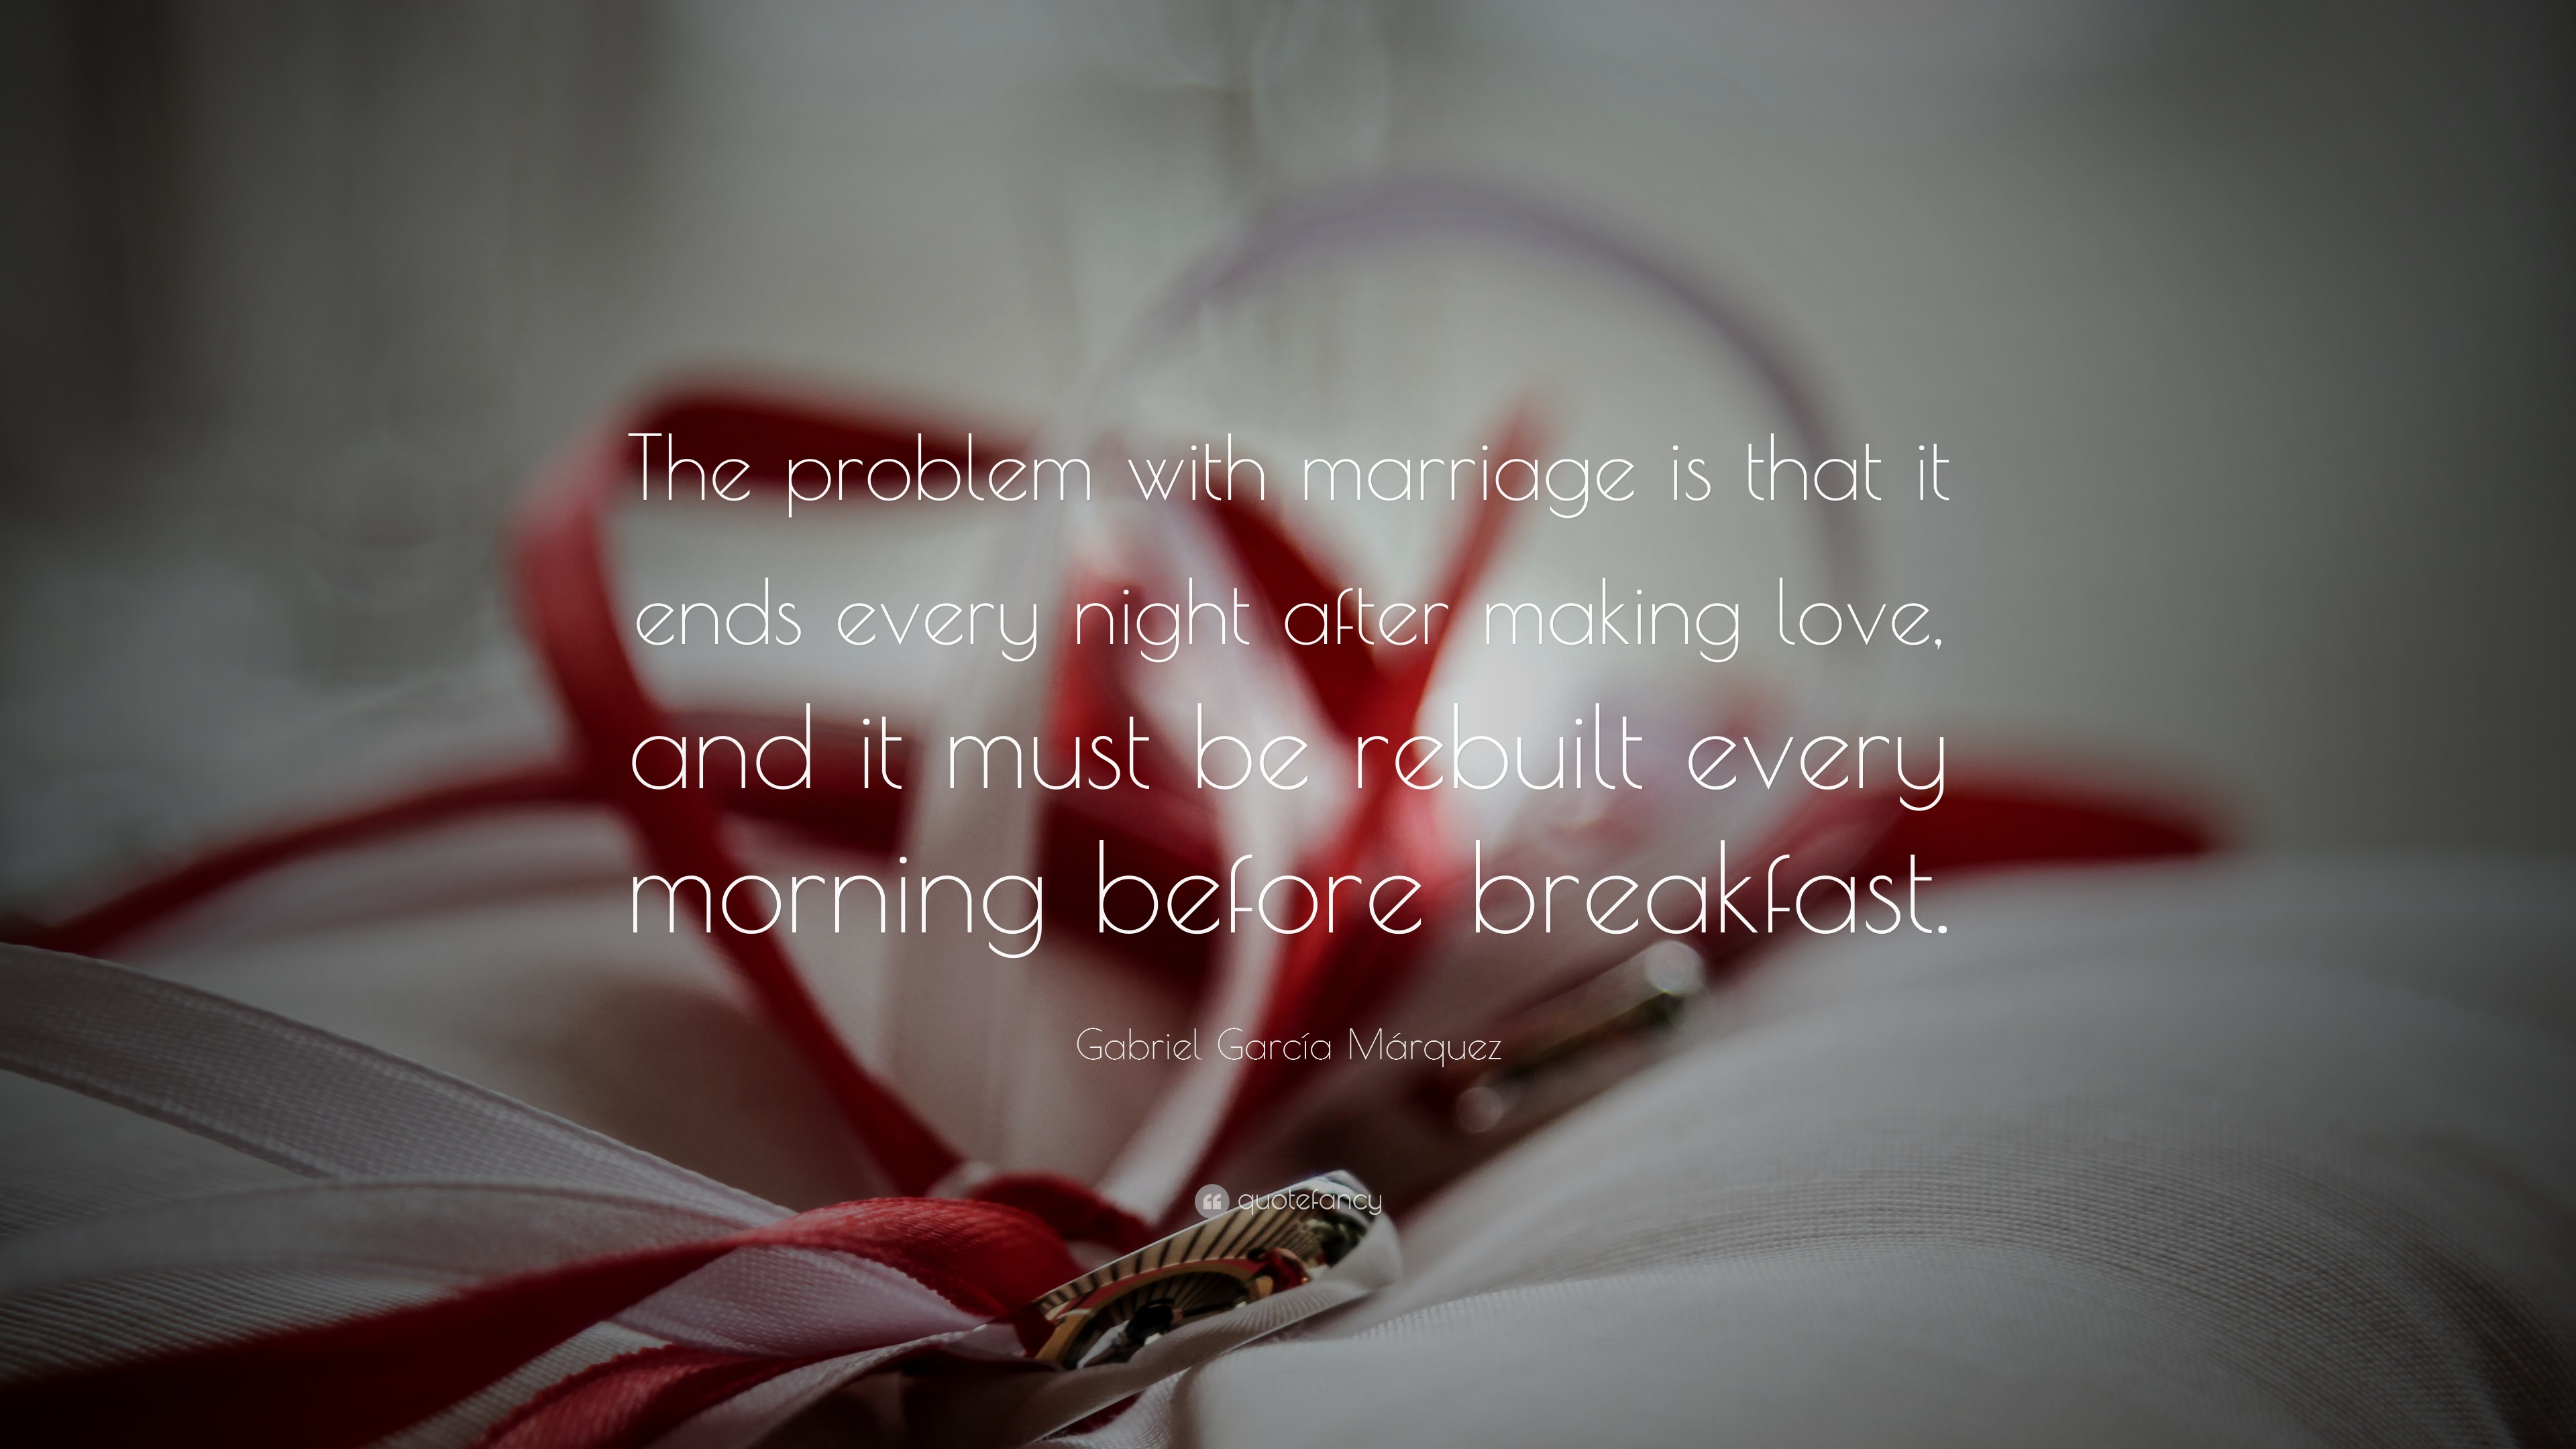 Quotes On Love And Marriage Marriage Quotes 58 Wallpapers  Quotefancy